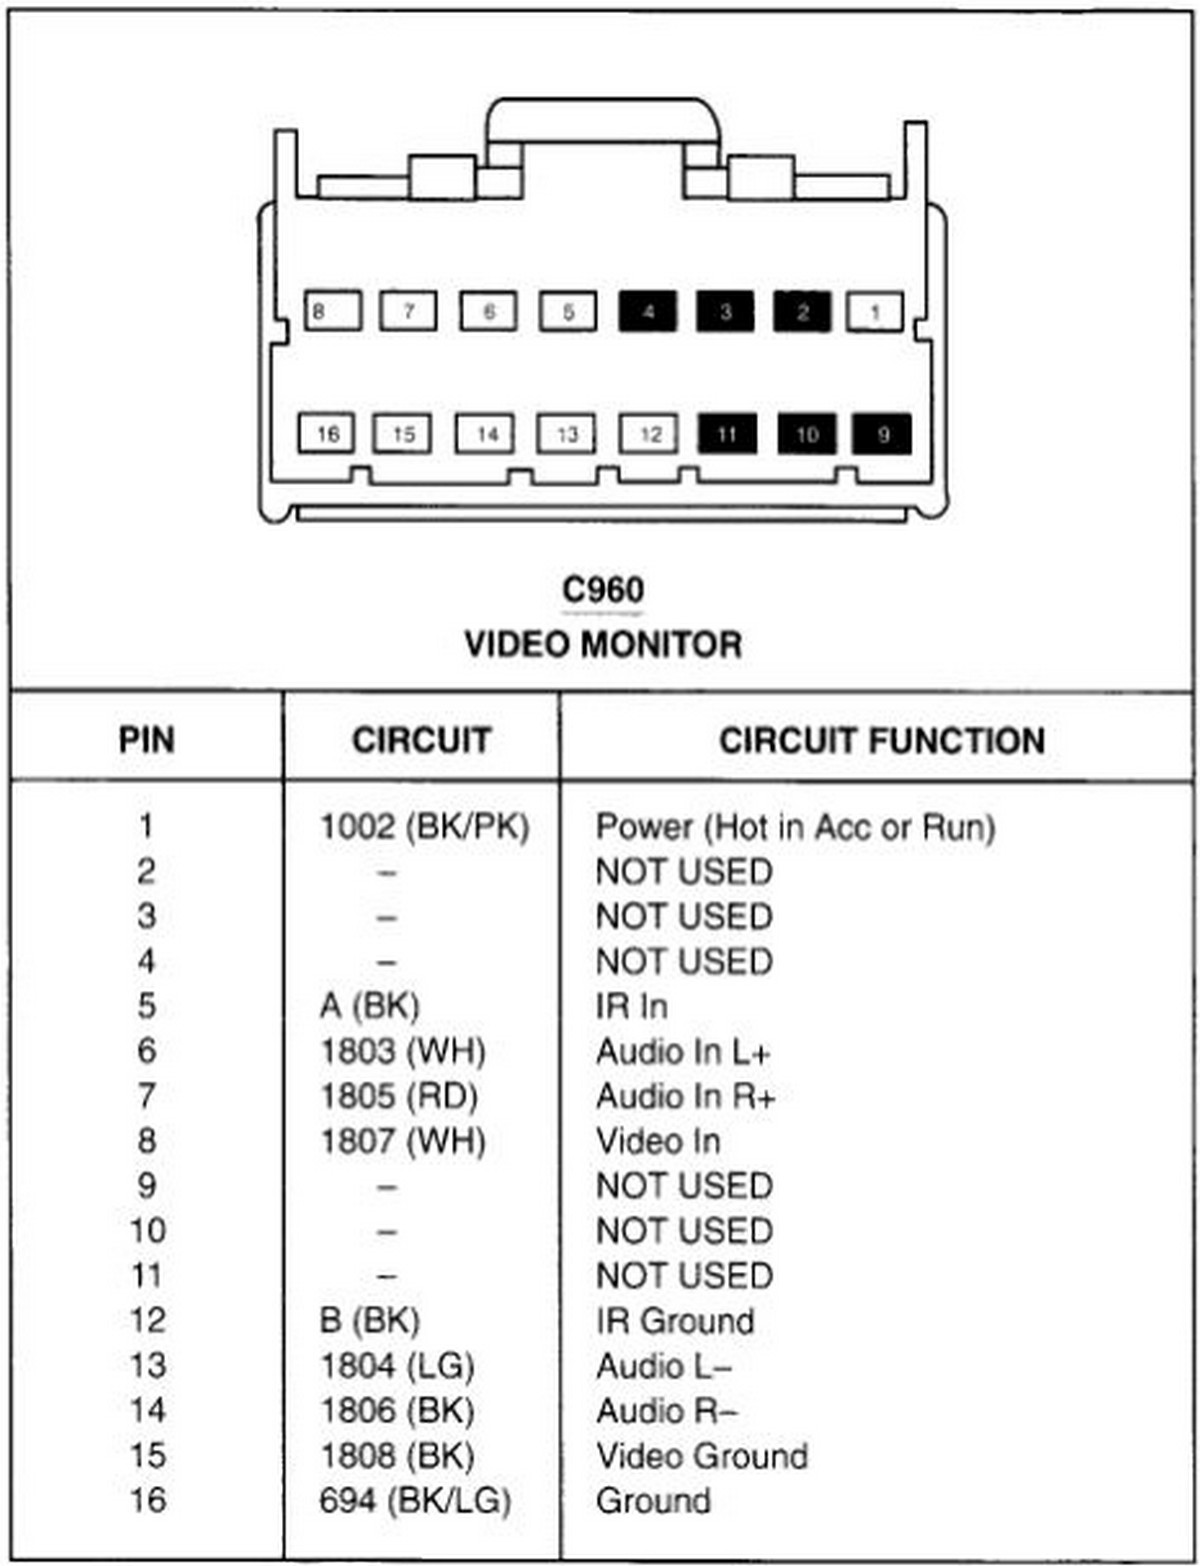 Ford Car Radio Stereo Audio Wiring Diagram Autoradio Connector Wire 2008 Expedition Installation Schematic Schema Esquema De Conexiones Stecker Konektor Connecteur Cable